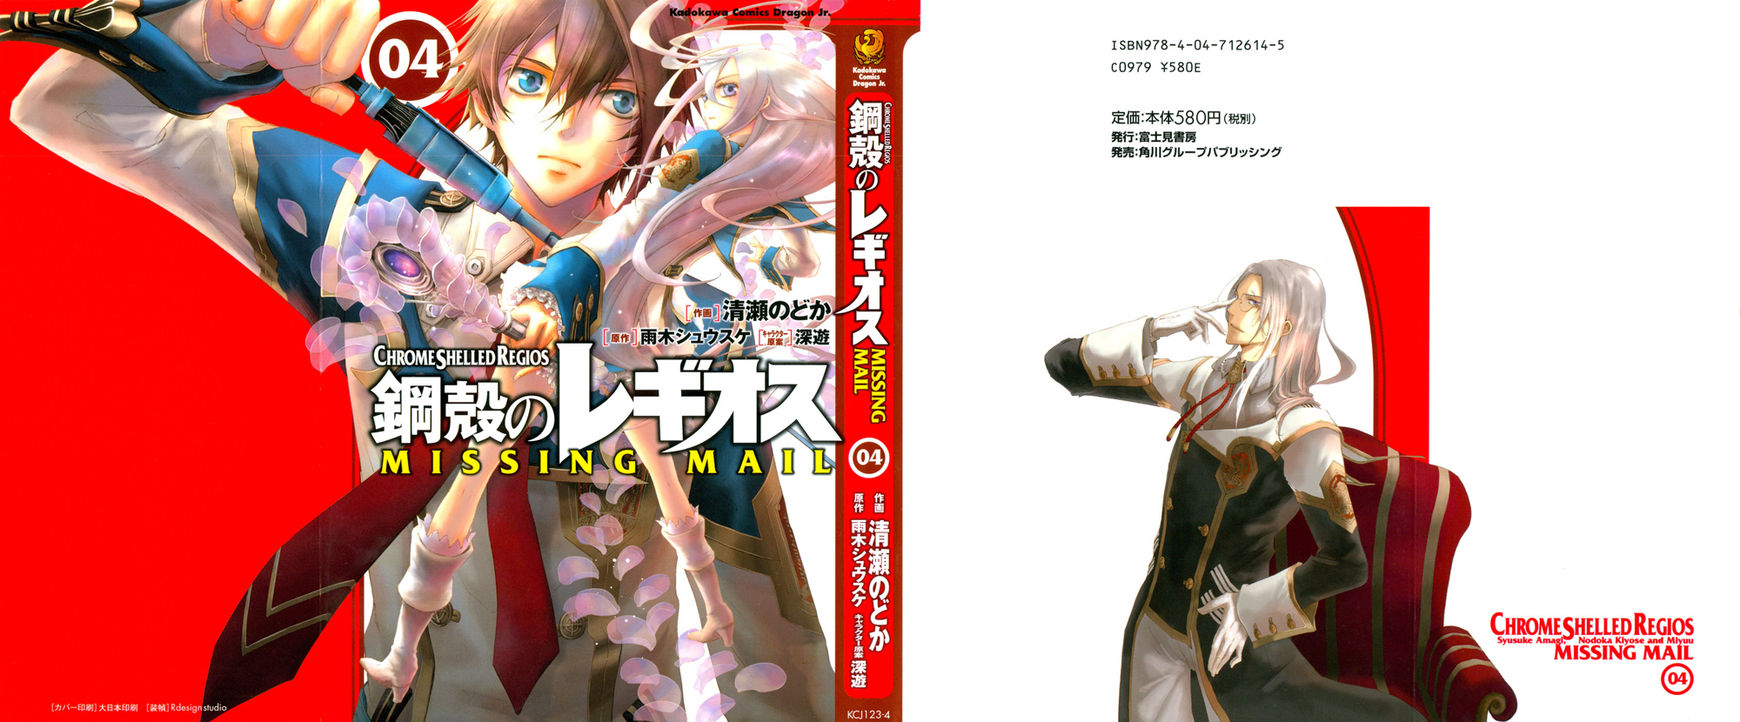 Chrome Shelled Regios: Missing Mail 16.5 Page 2